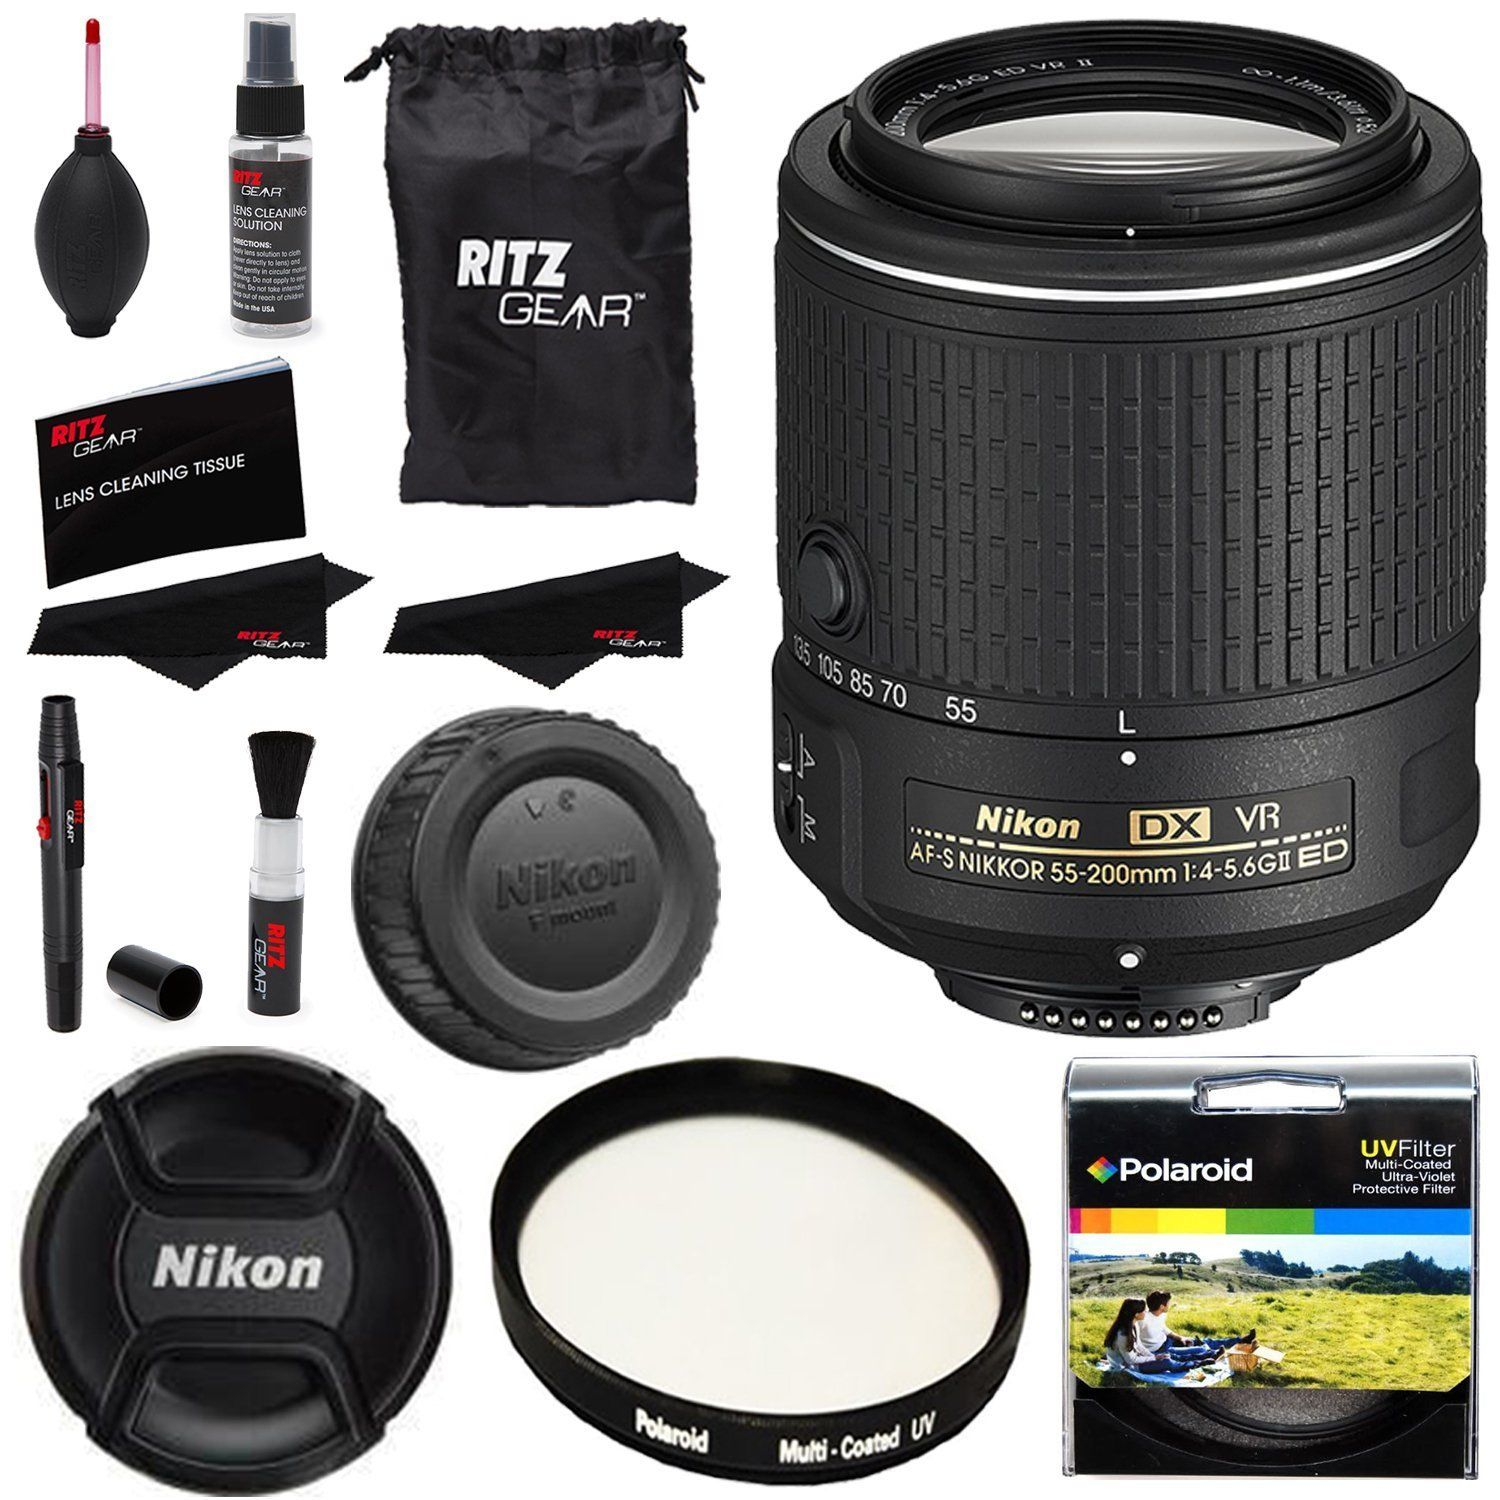 Nikon AFS DX NIKKOR 55-200 f 4-5.6G ED VR II Lens + Polaroid Filter~Cleaning Kit International Version by Nikon